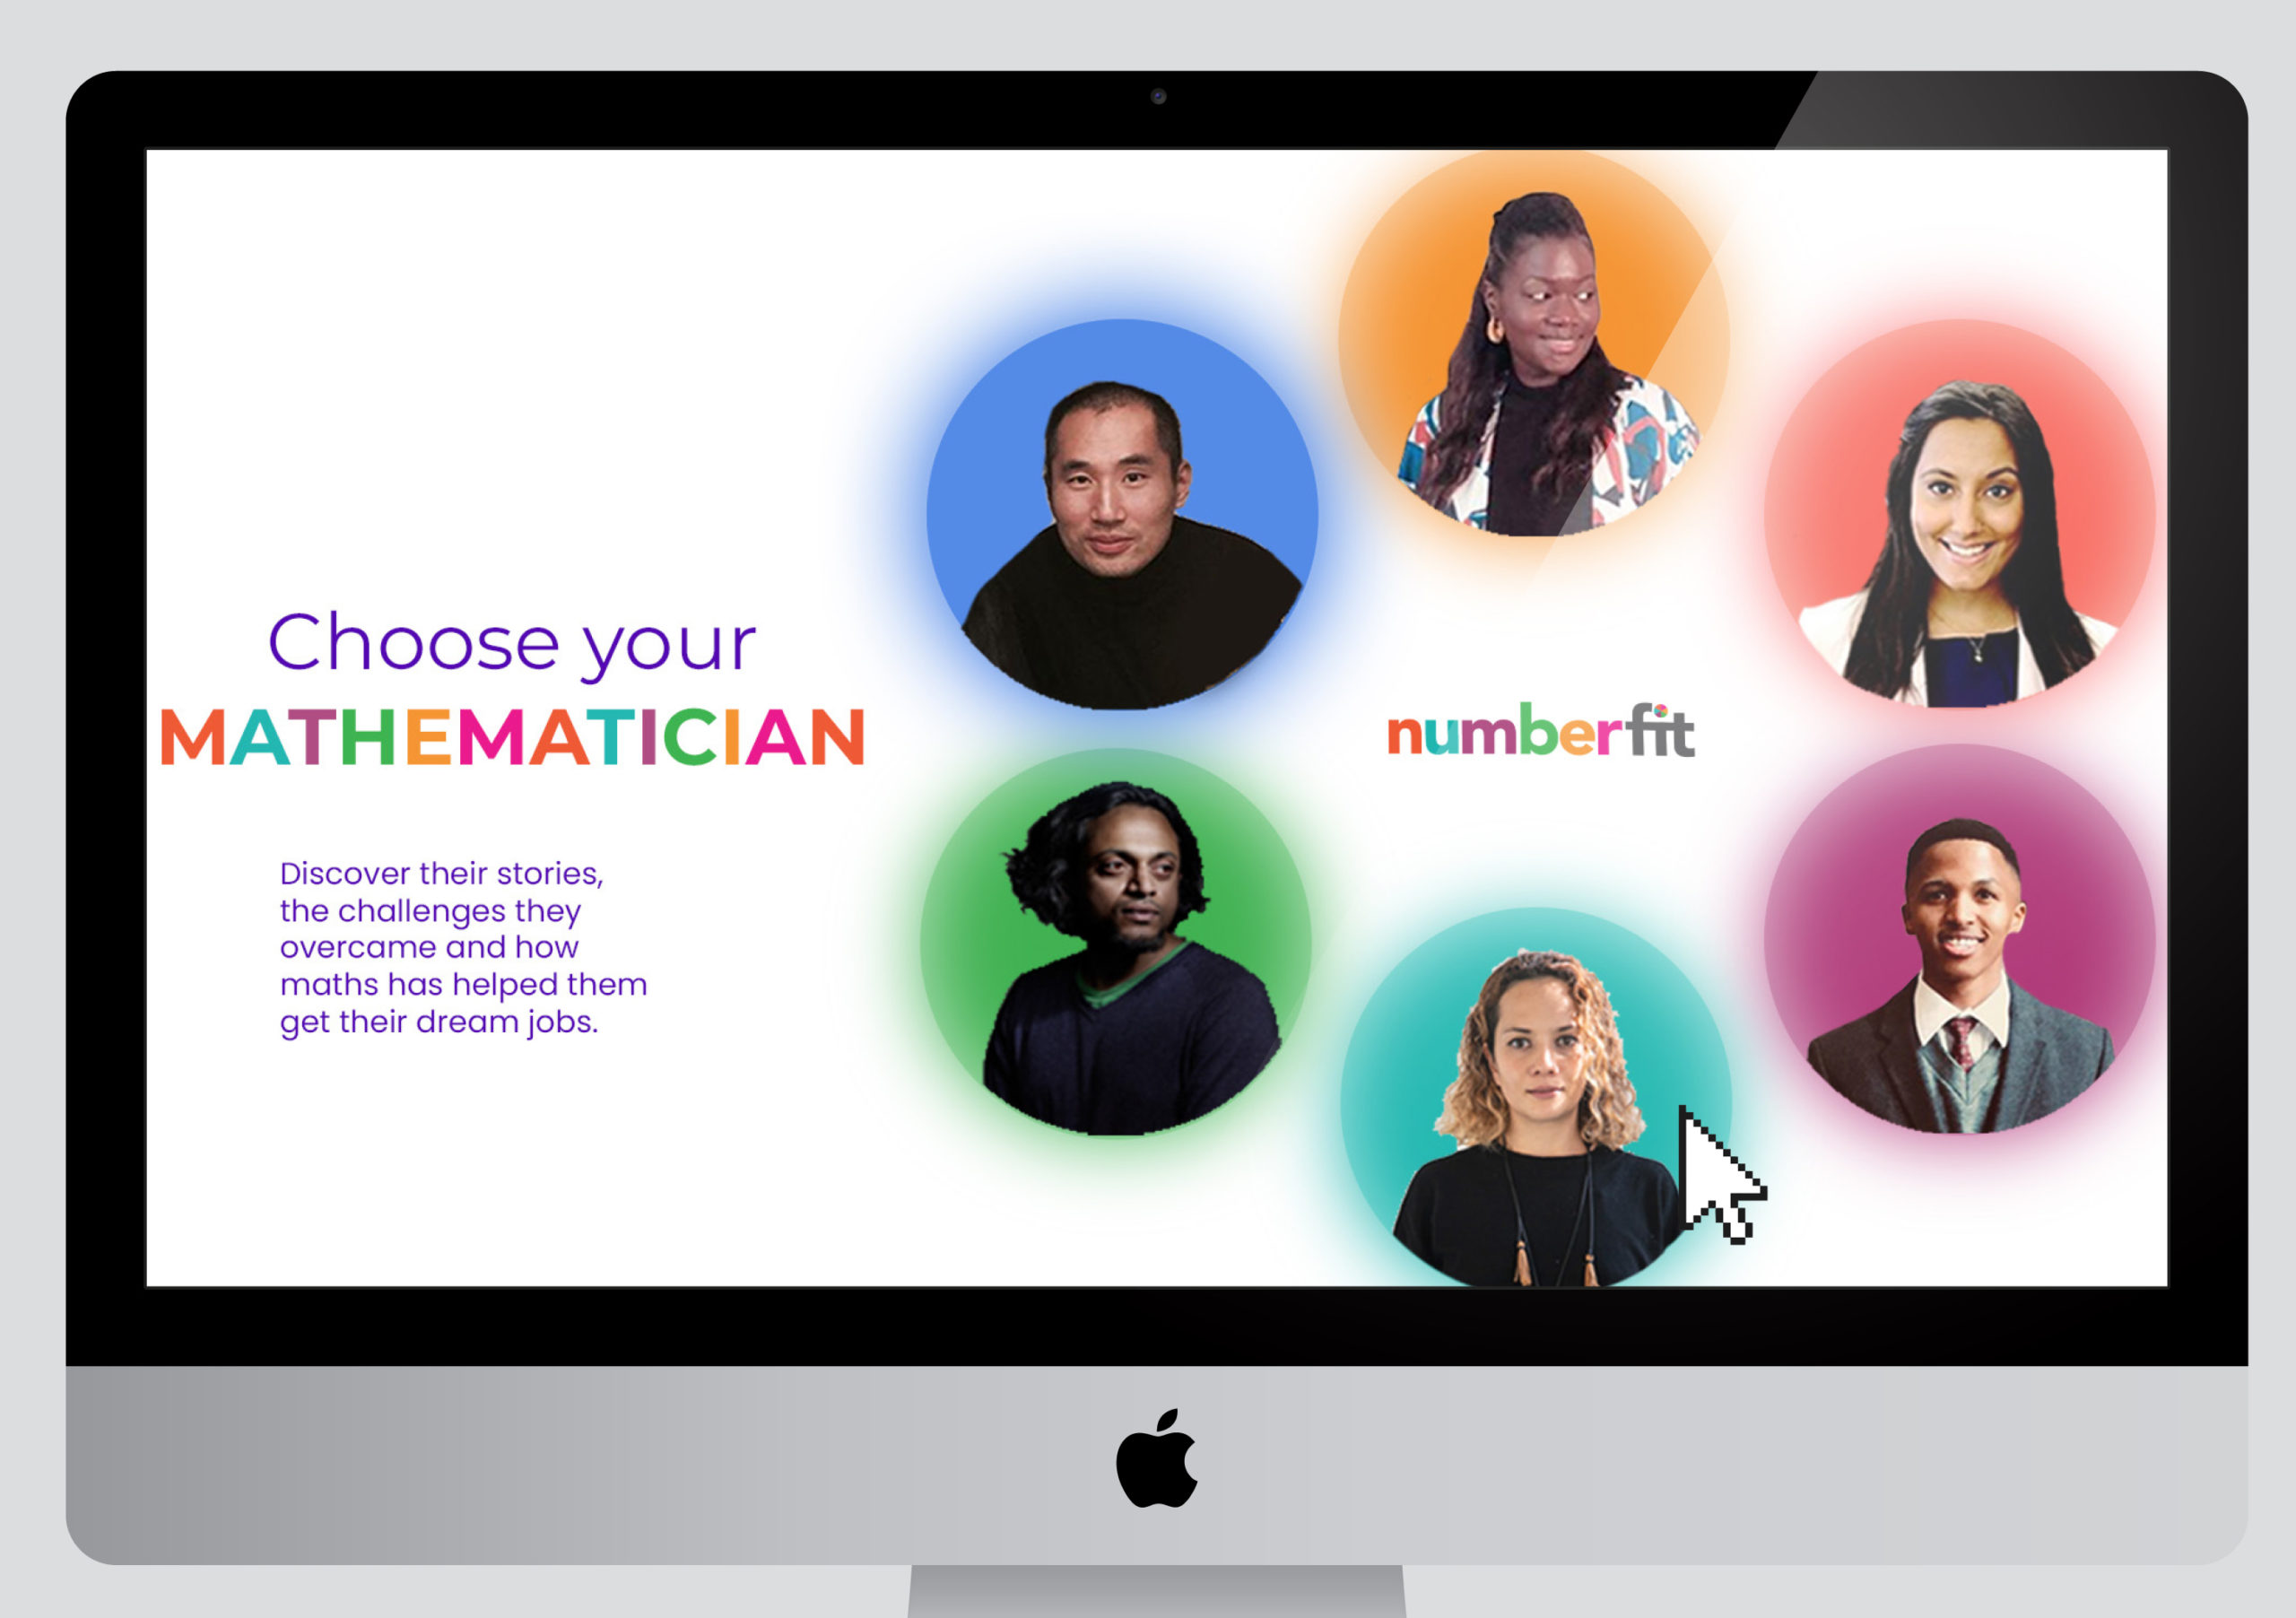 an apple computer screen showing six individuals in circular frames on a coloured background